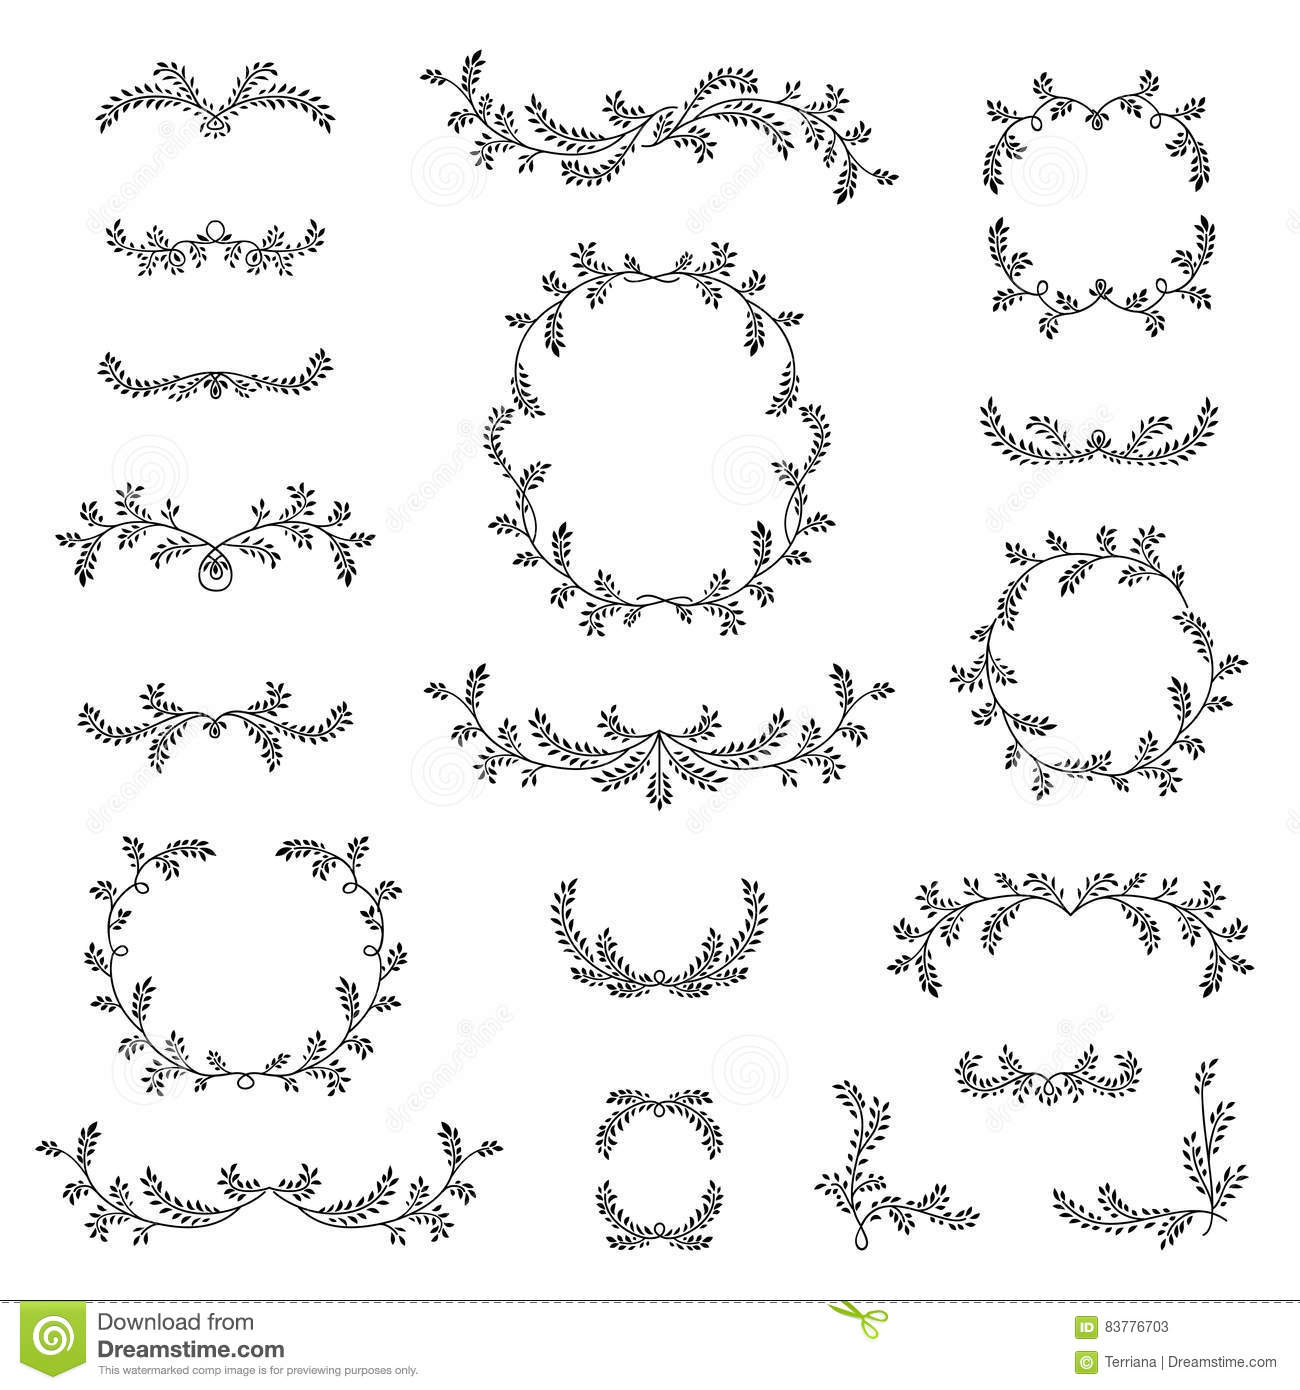 Floral frame border wreath dividers calligraphic